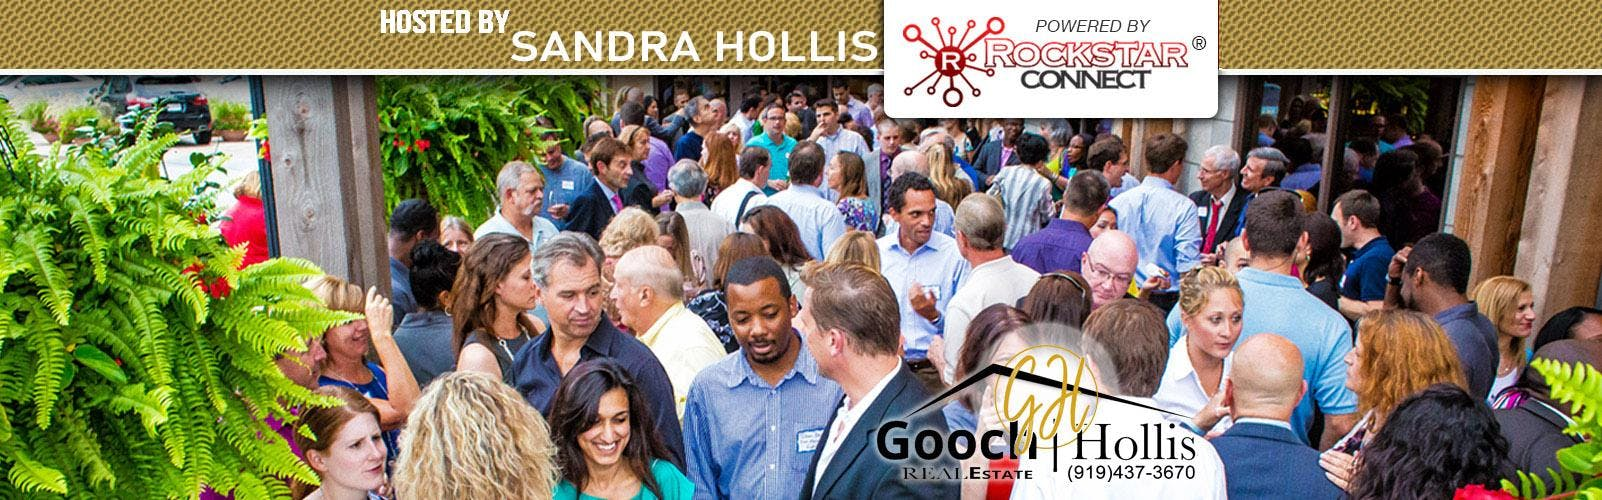 Free Cary Elite Rockstar Connect Networking Event (August, near Raleigh)